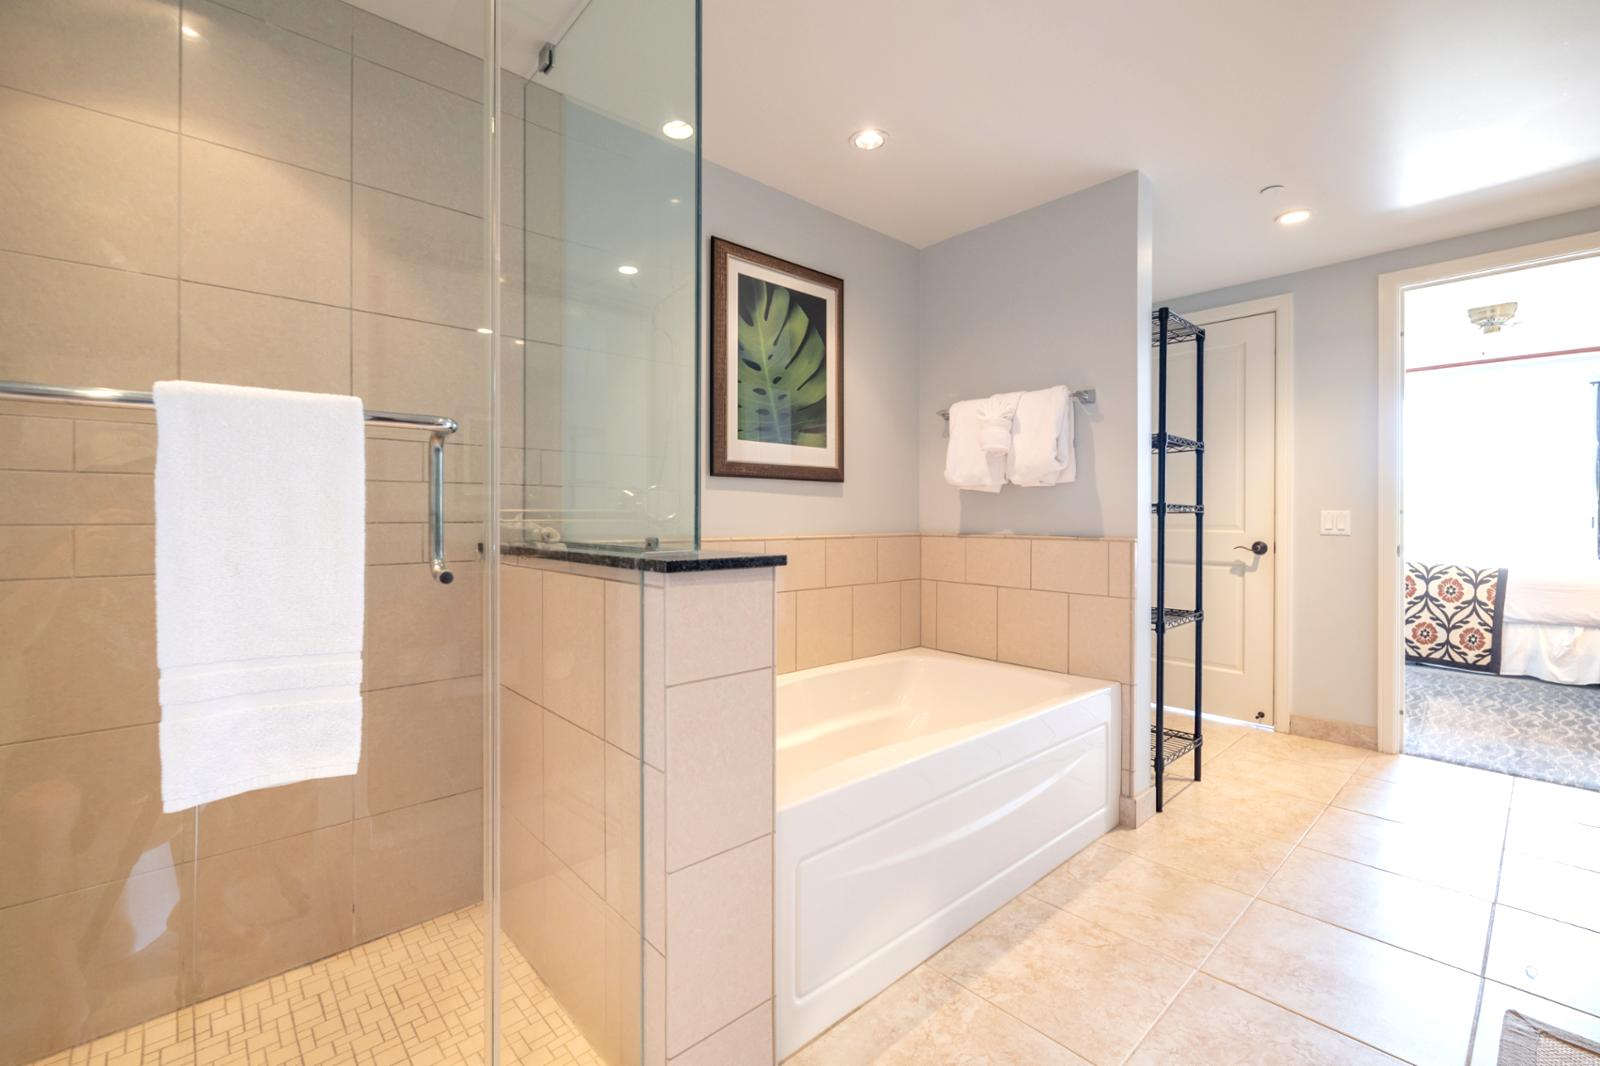 Glass enclosed shower from floor to ceiling and adjacent tub, hallway access